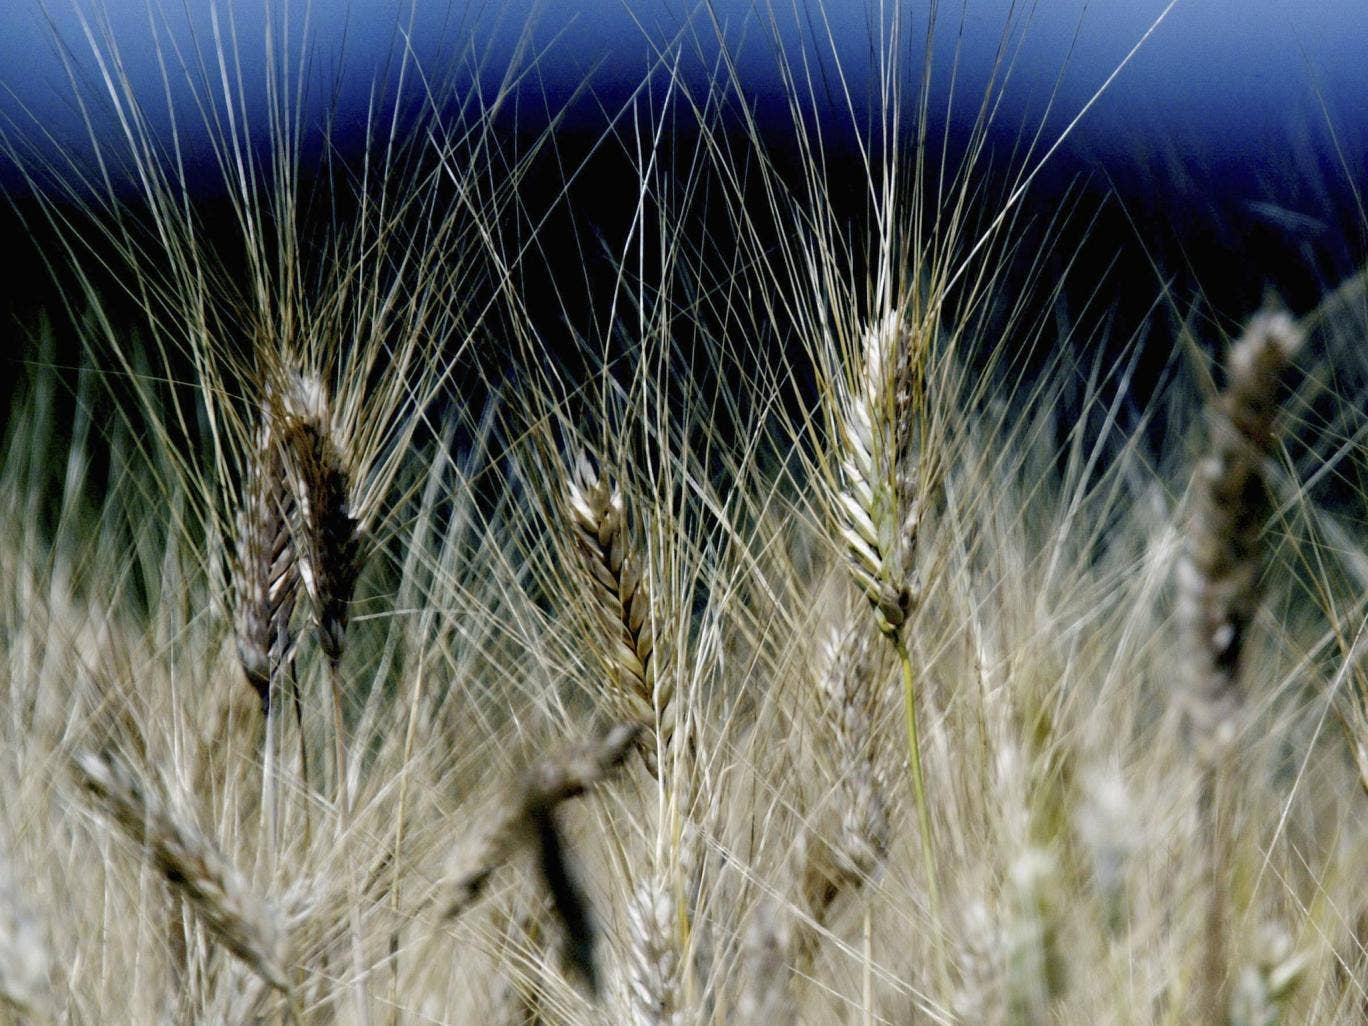 There is no compelling evidence to suggest that genetically modified crops are any more harmful than conventionally grown food